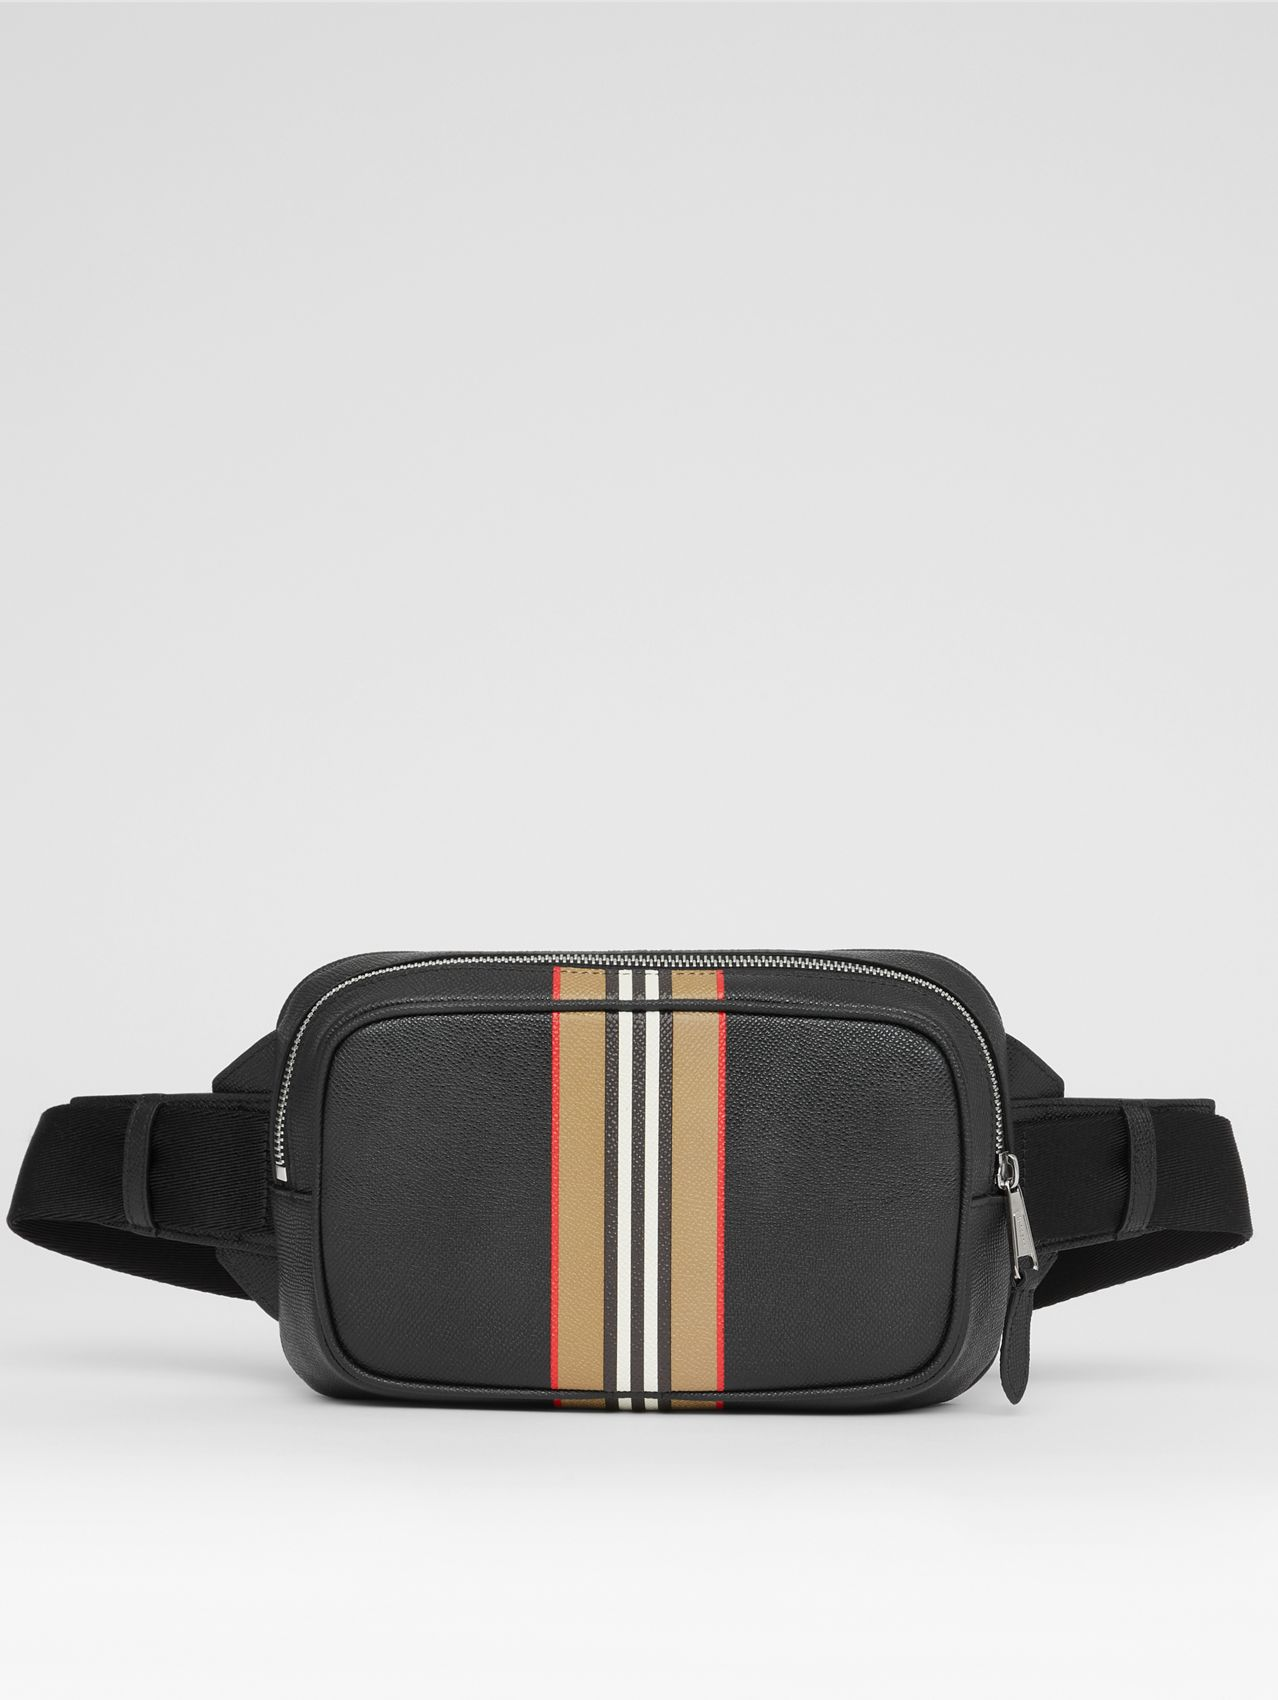 Icon Stripe Print Grainy Leather Bum Bag in Black